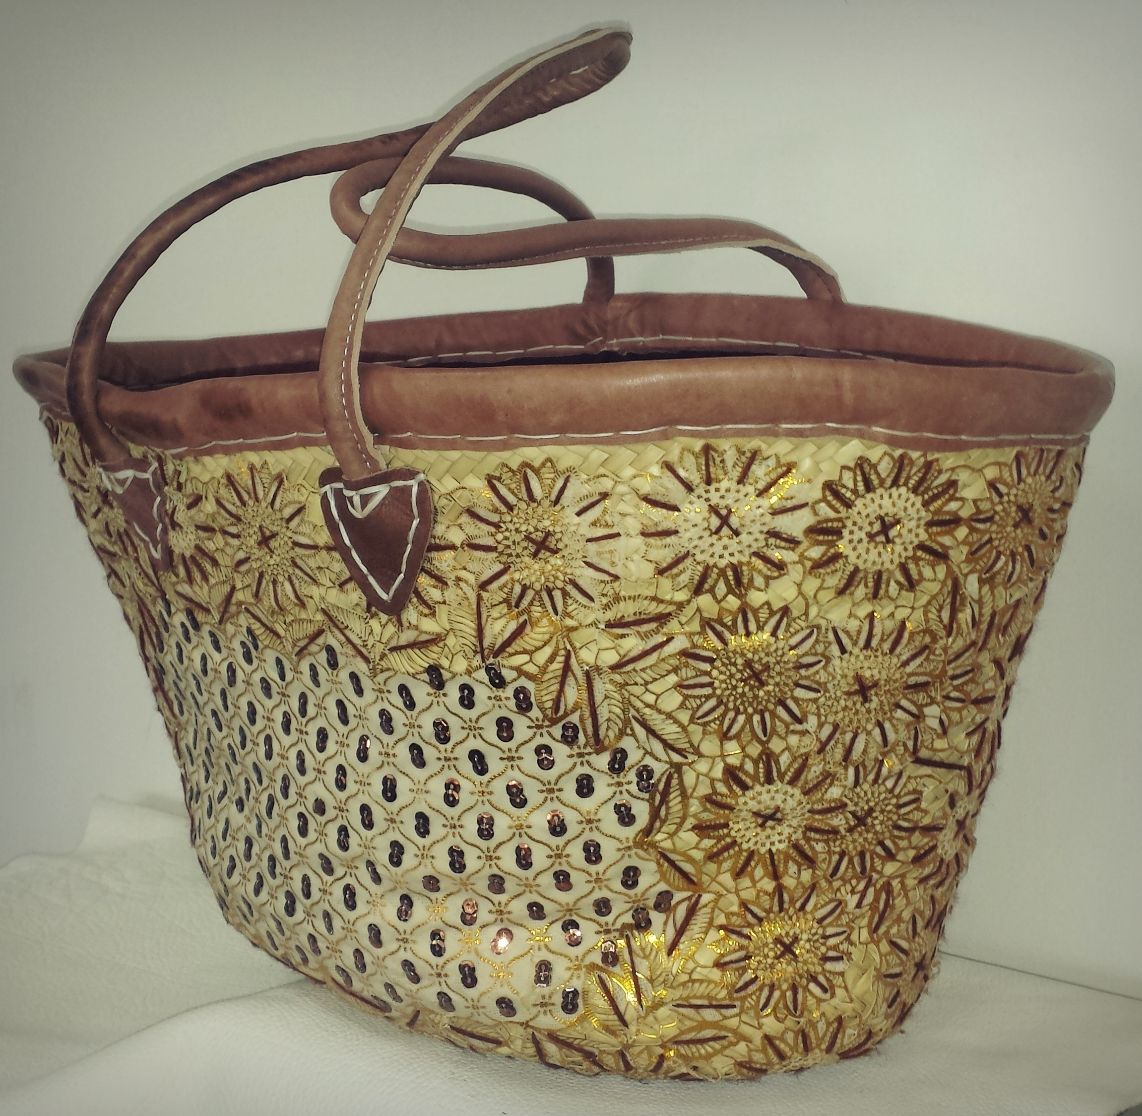 Borsa di paglia in damascato. Misure: 48x29x13 Straw bag damask Measures: 48x29x13